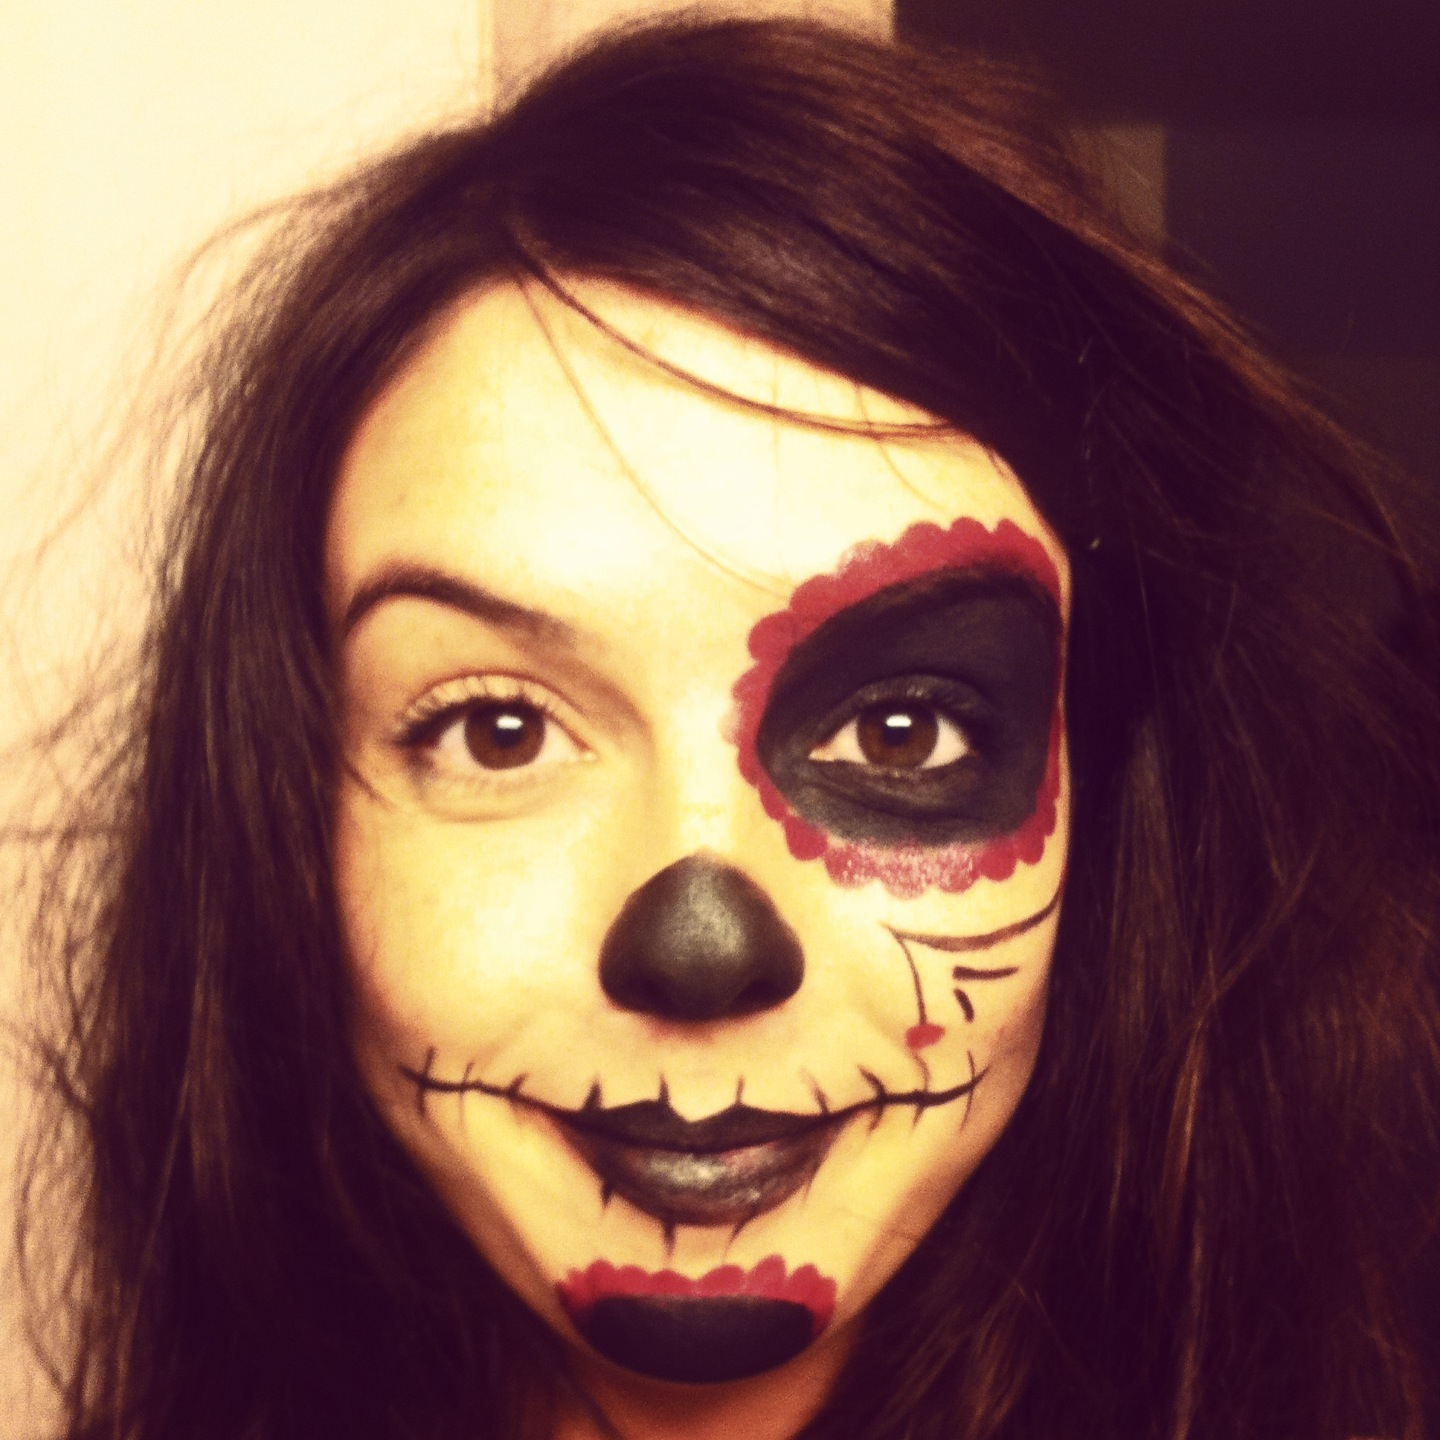 Maquillage t te de mort mexicaine facile - Maquillage mexicain facile ...